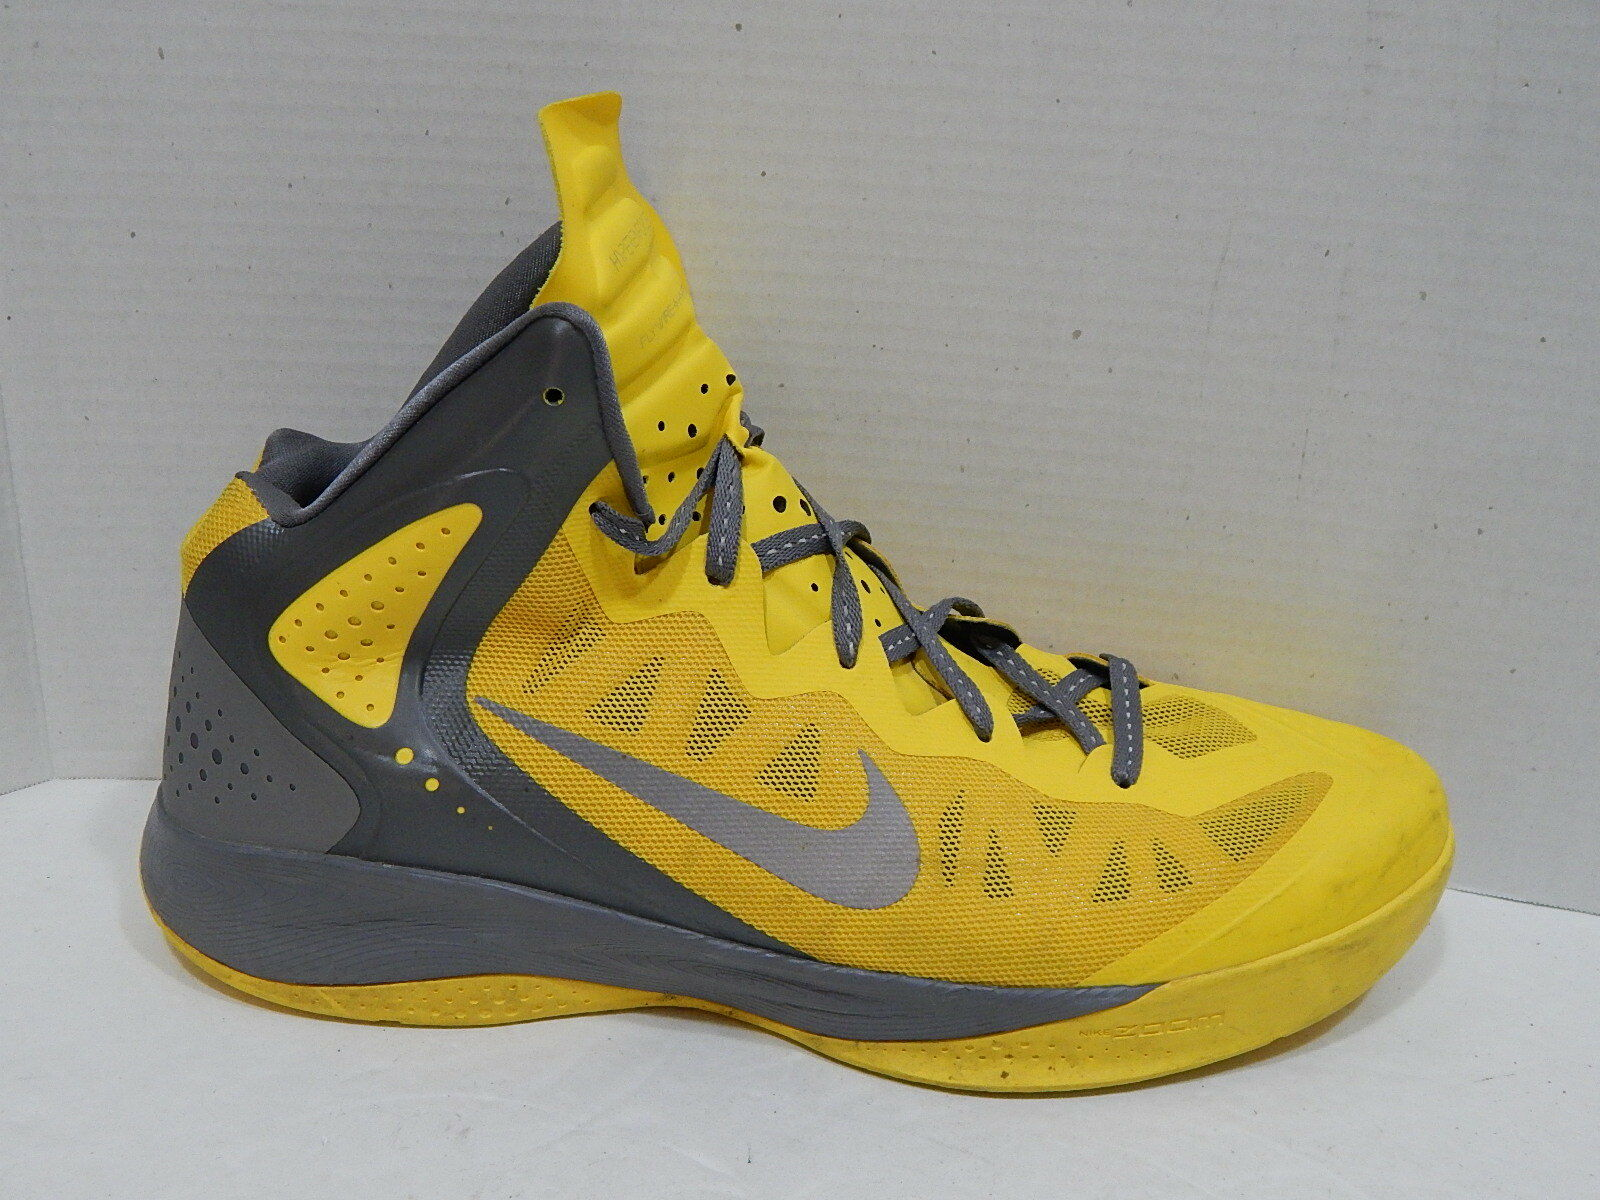 NIKE ZOOM HYPERENFORCER SHOES BASKETBALL DEL SOL YELLOW US SIZE 17